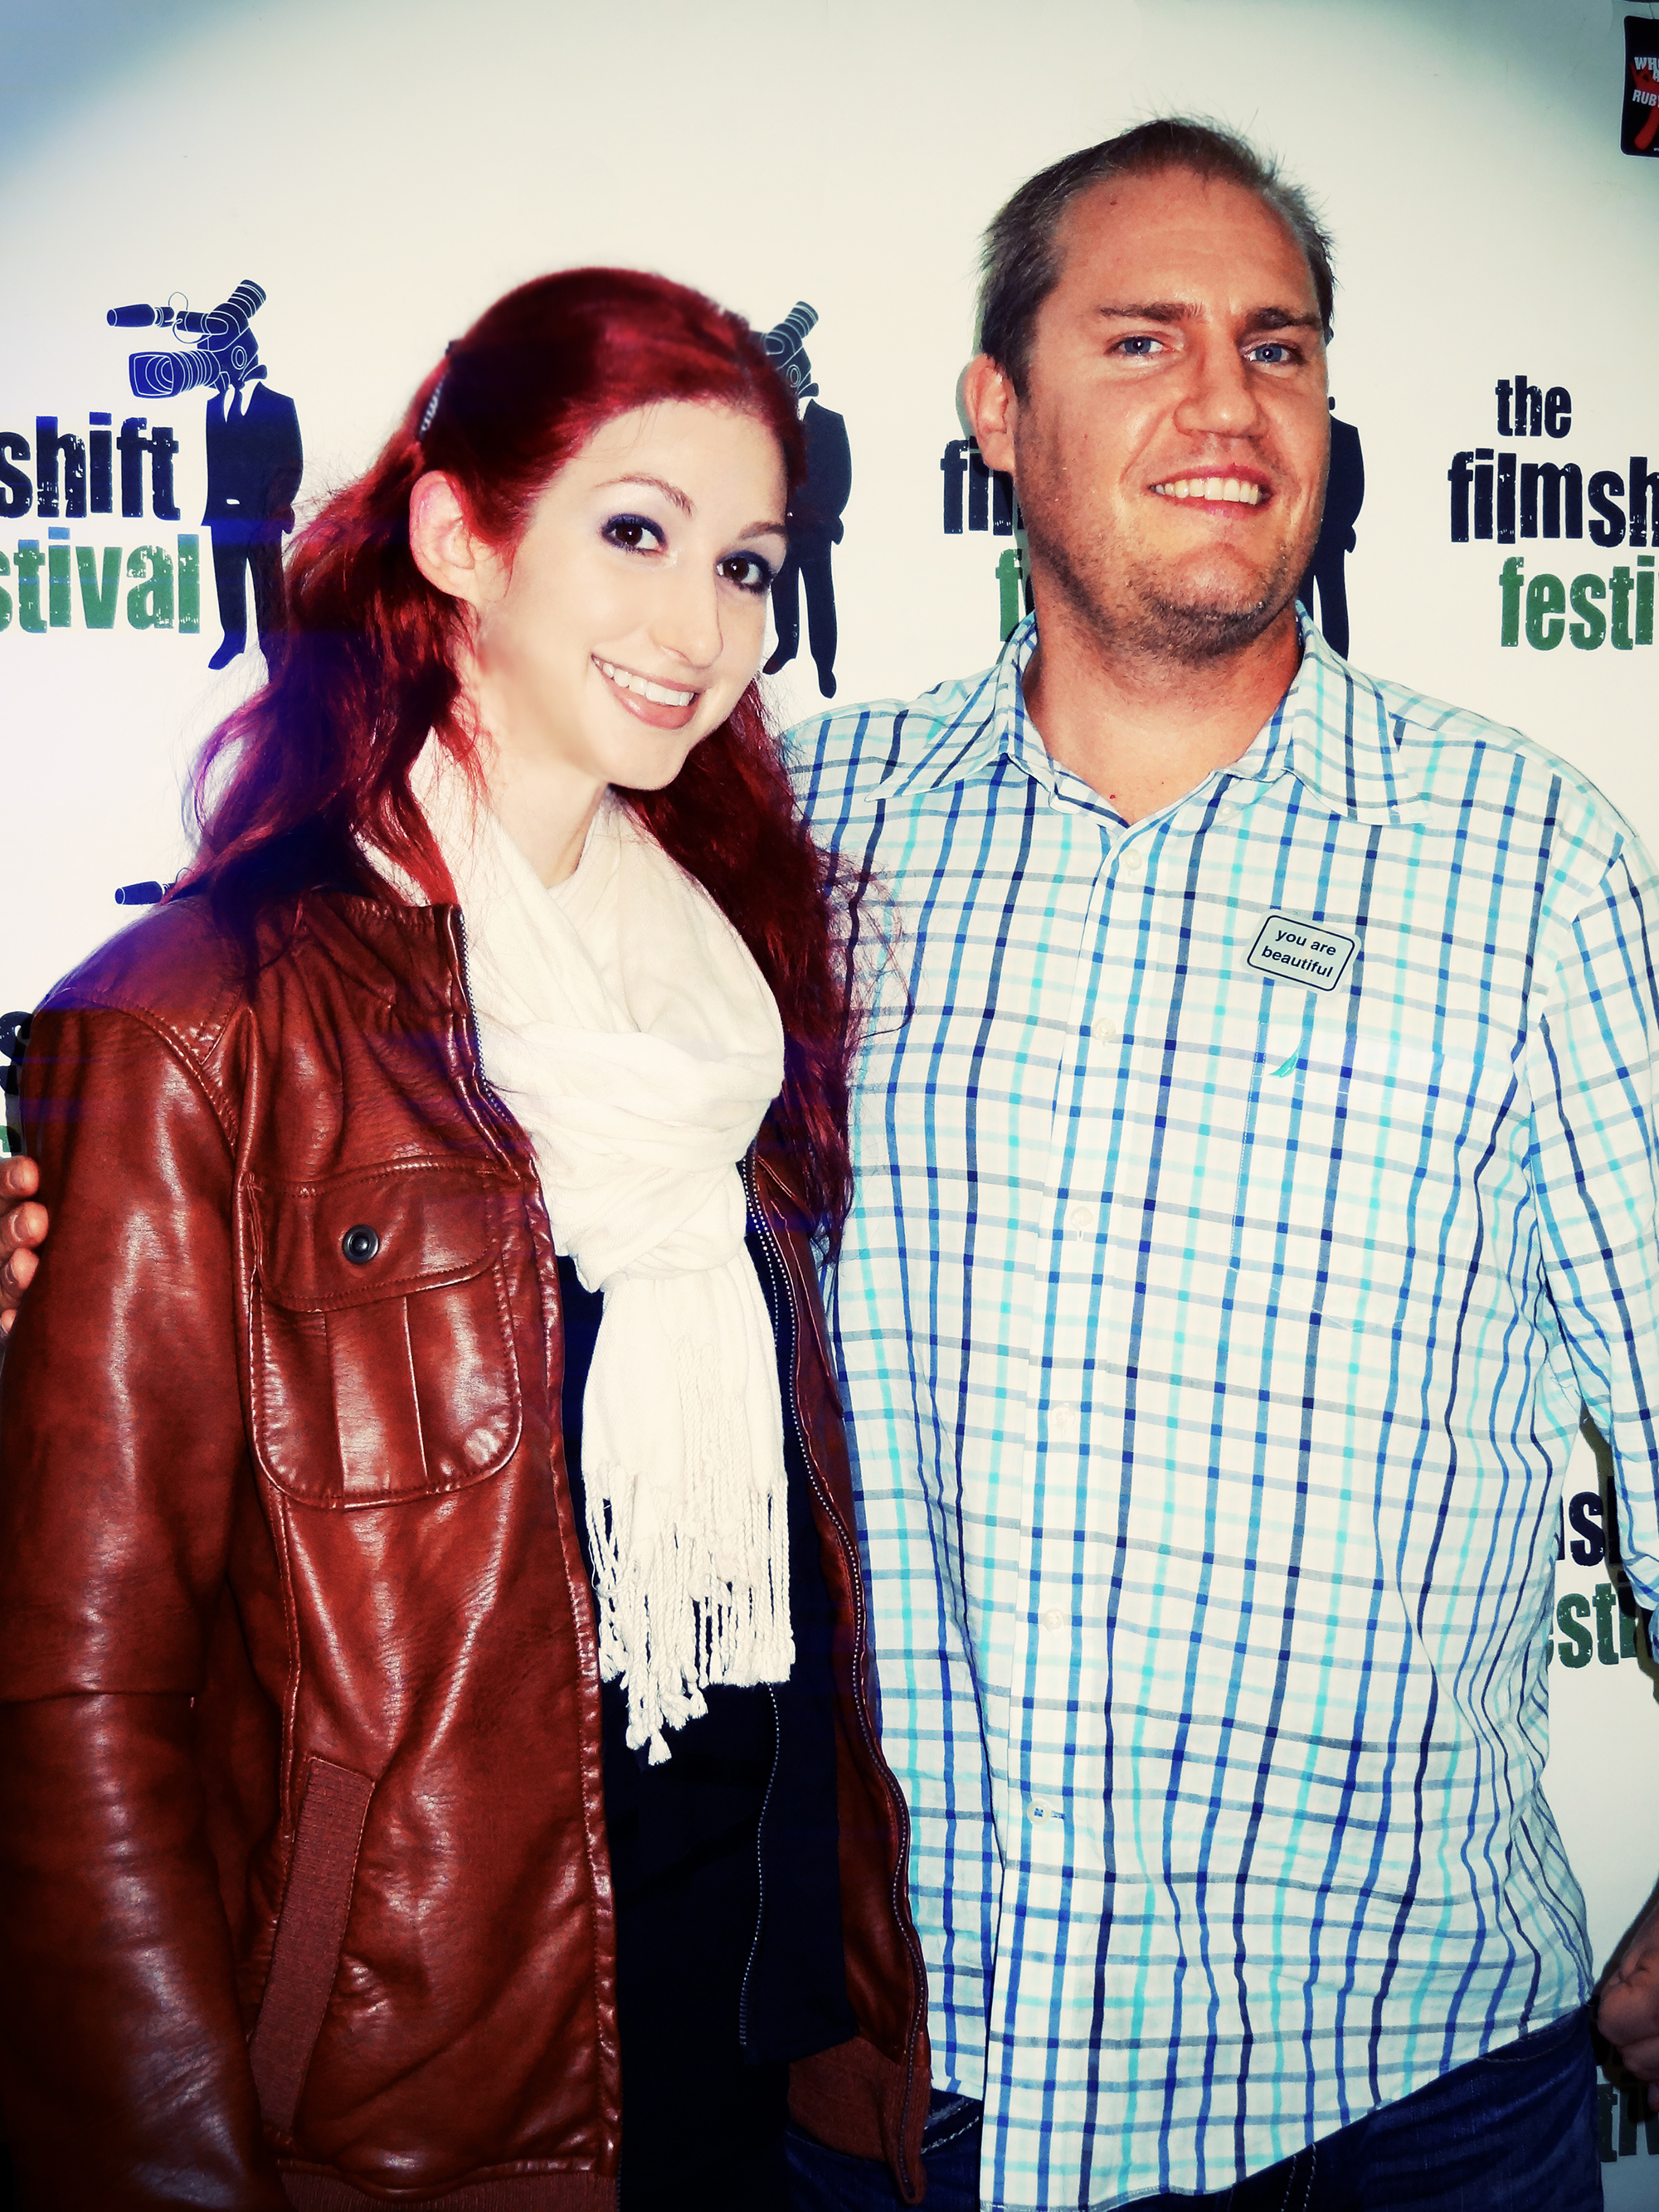 Geena Matuson (@geenamatuson) with FilmShift Producer Jed Hammel, 2013.